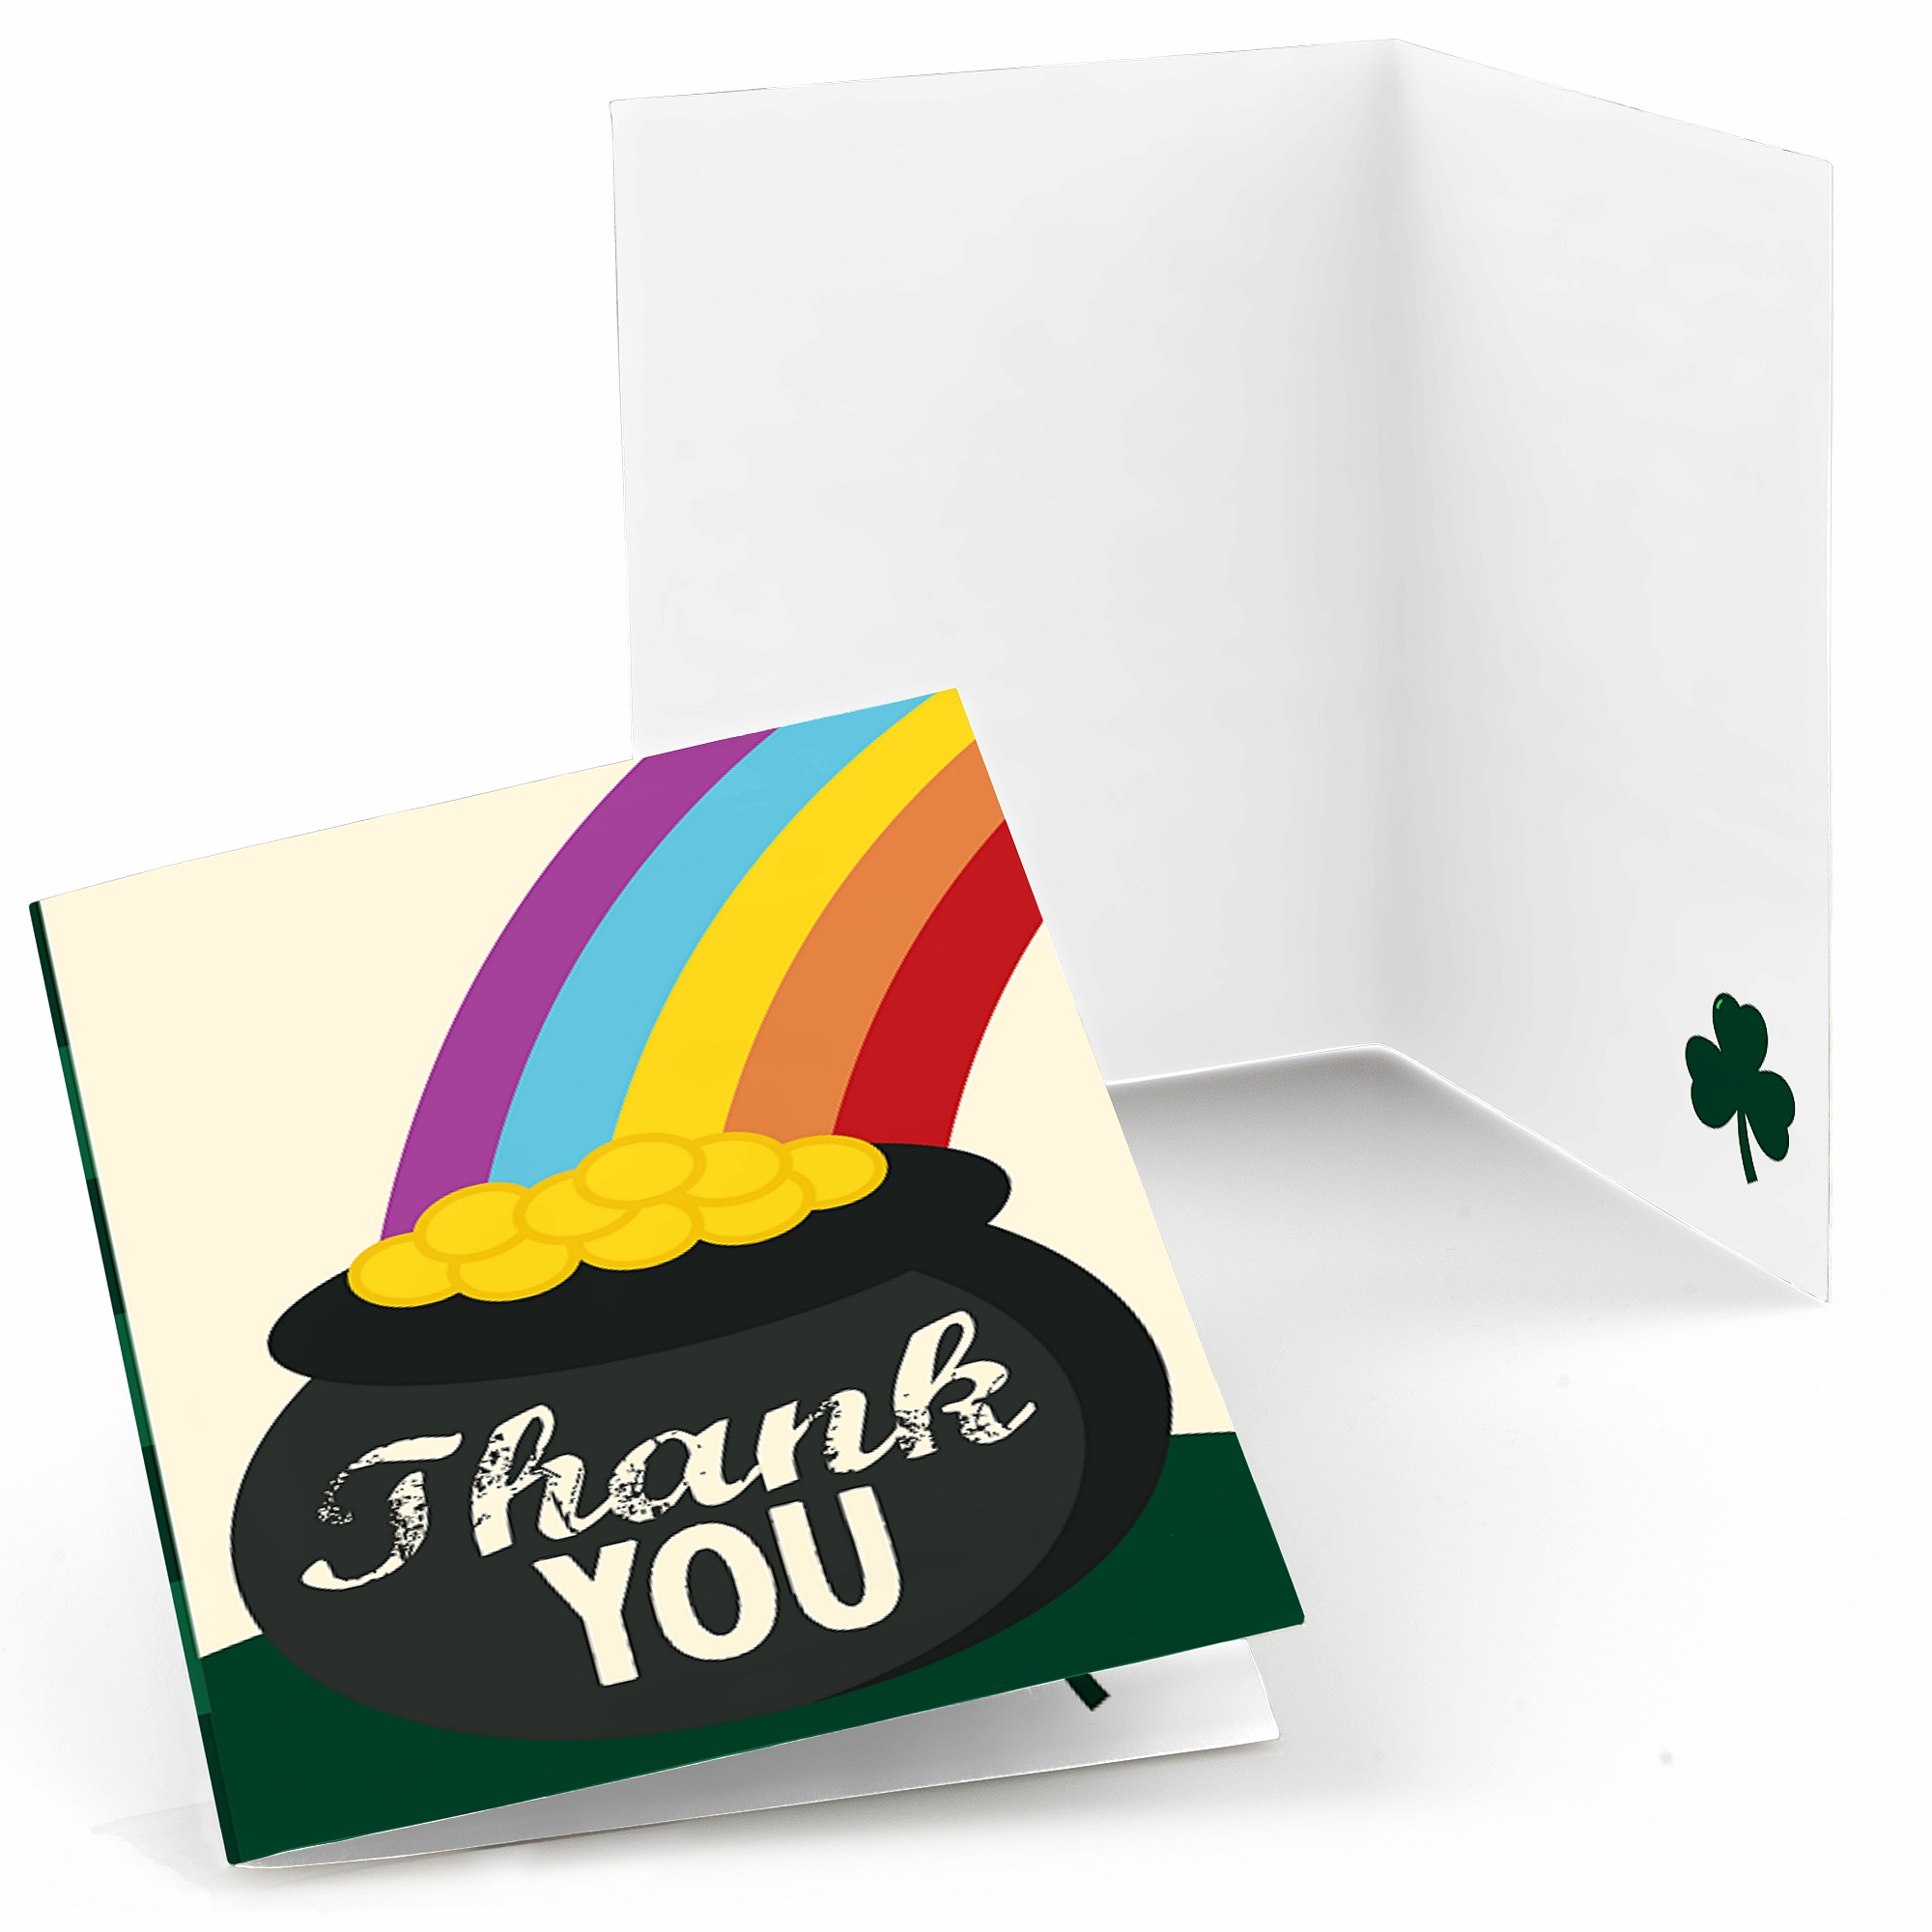 St. Patrick's Day - Saint Patty's Day Party Thank You Cards (8 count)